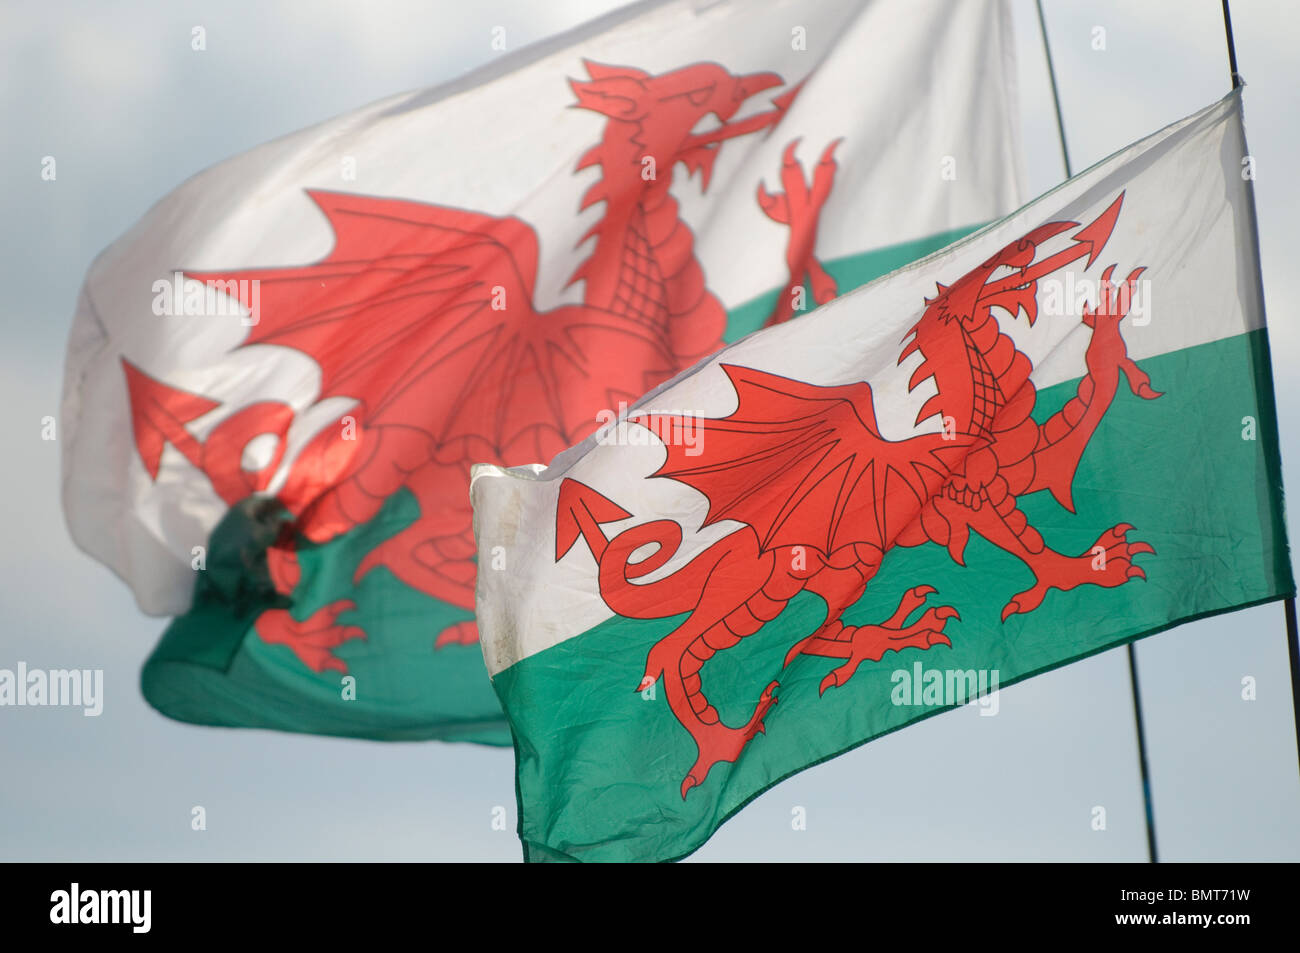 welsh red dragon banners flags, wales - Stock Image